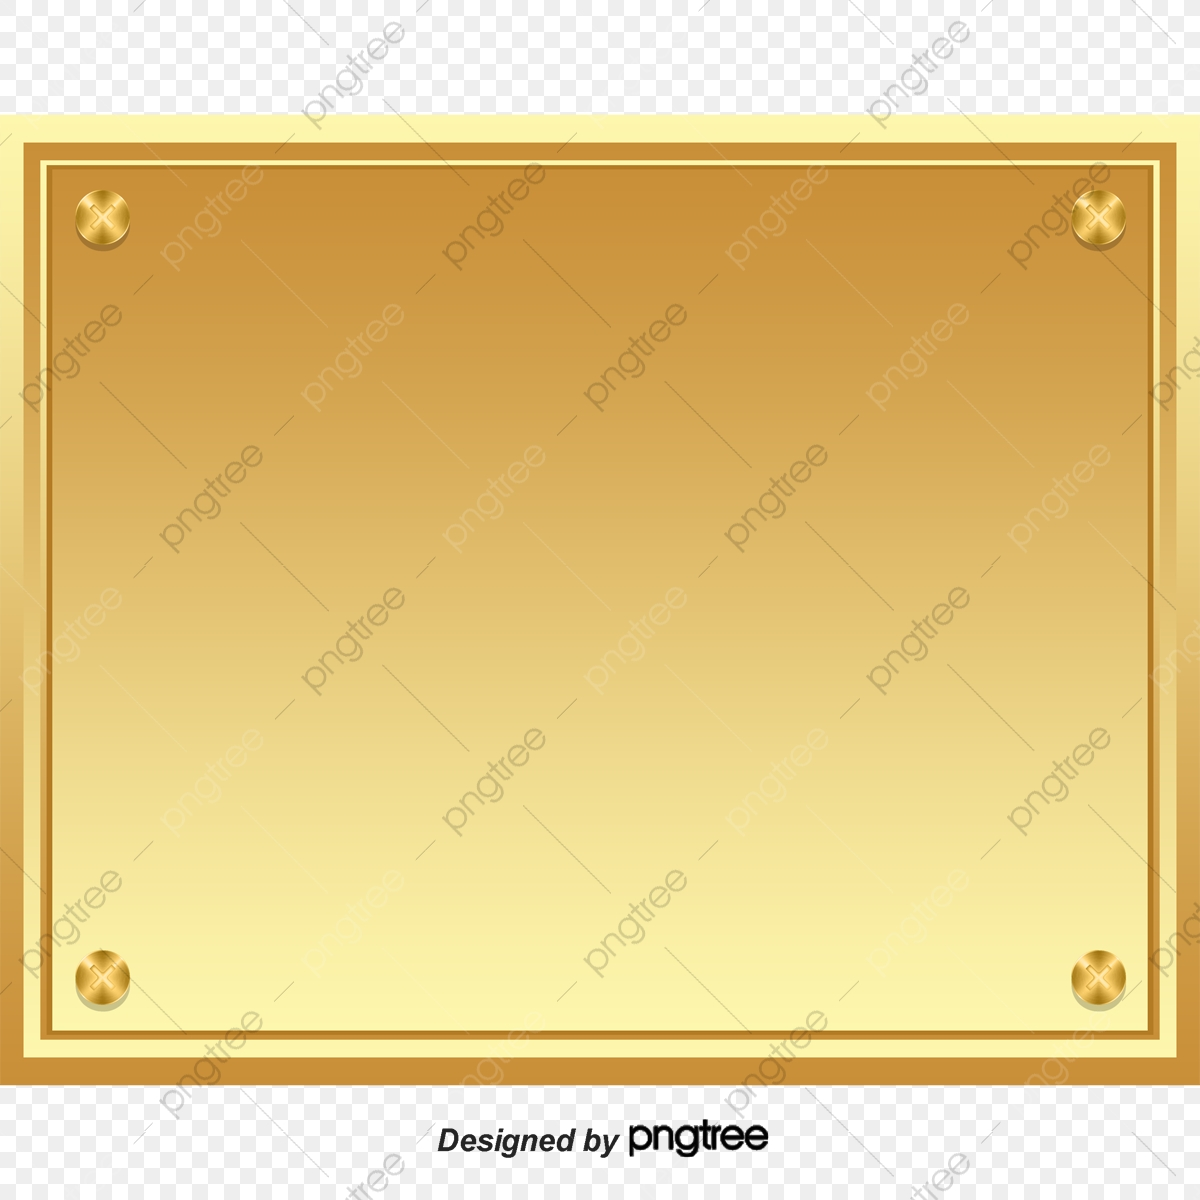 Gold Plaque Material Download, Gold, Golden, Plaque PNG Transparent.